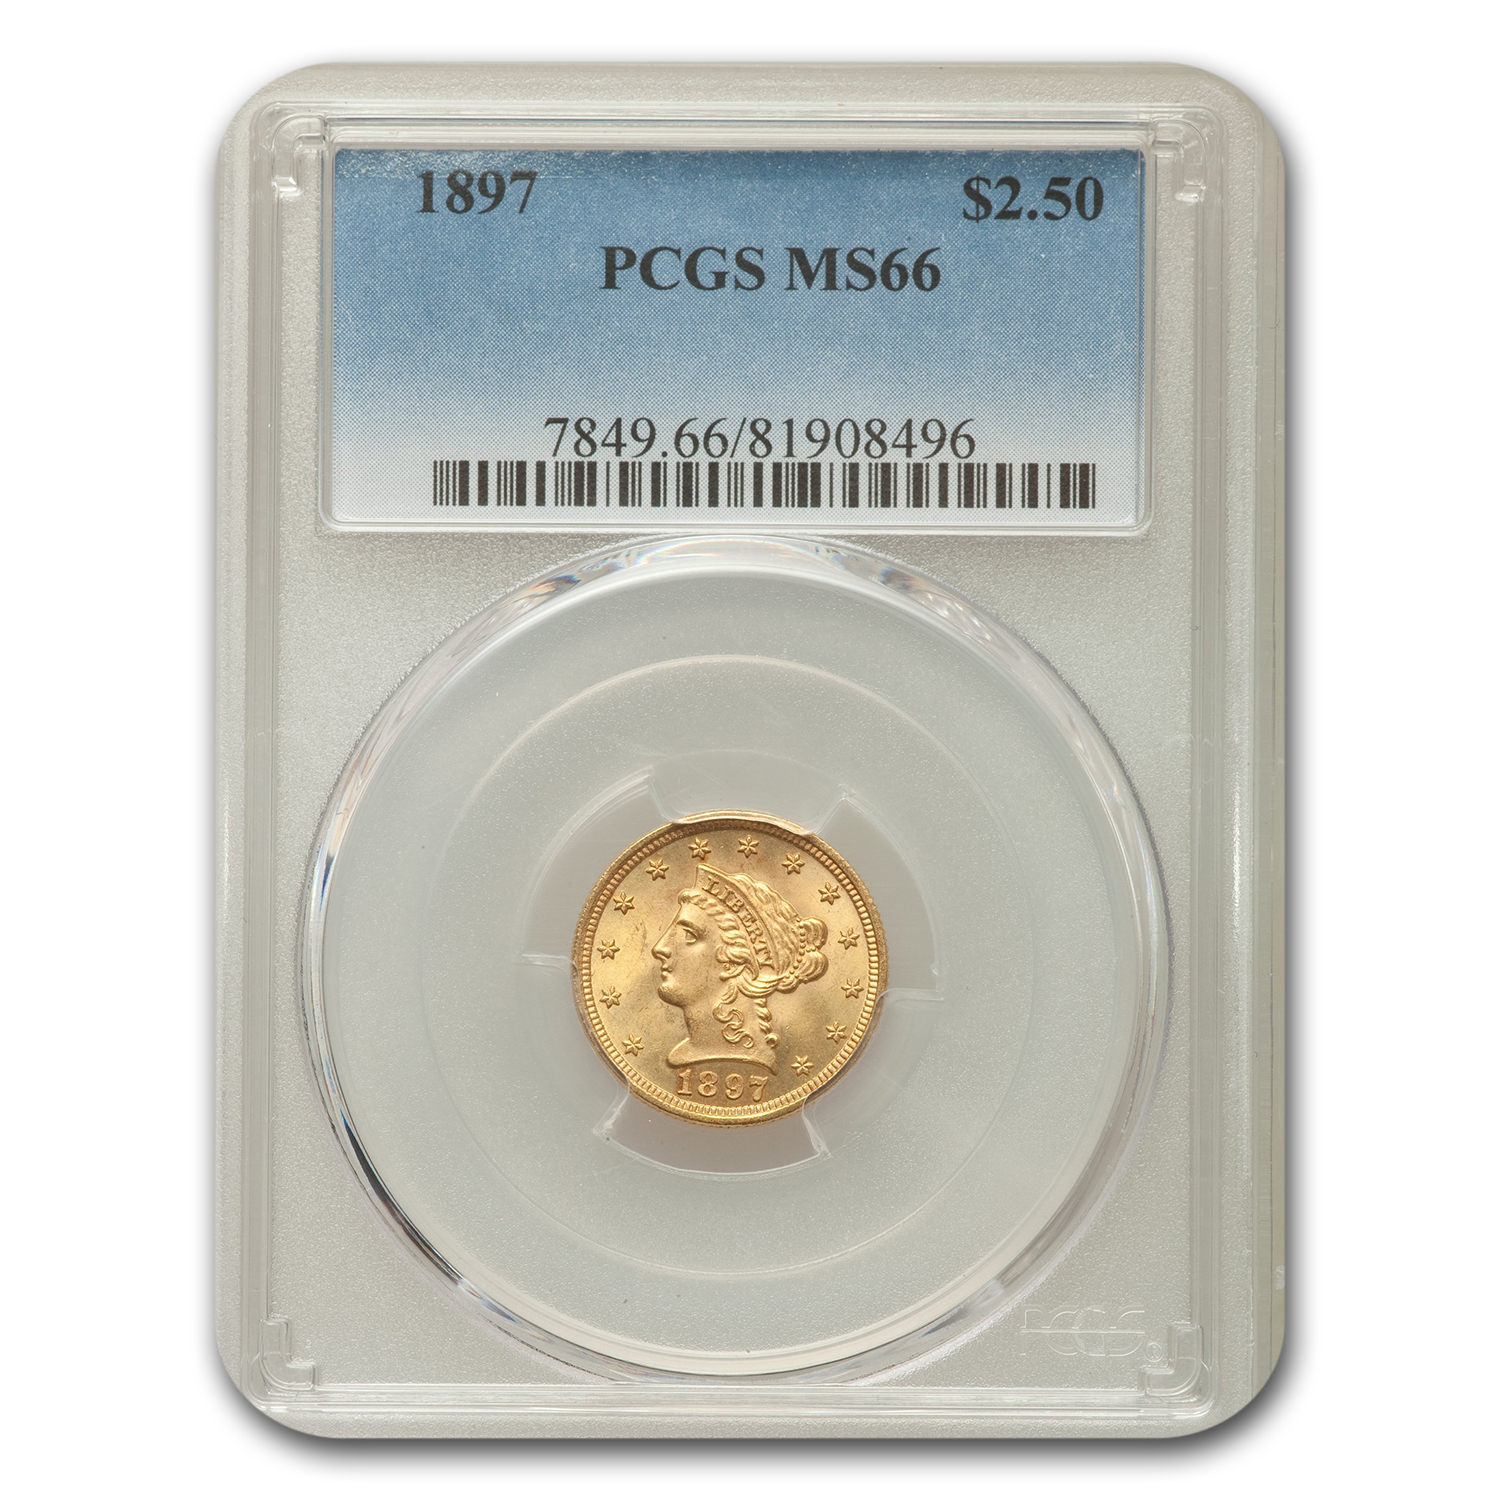 1897 $2.50 Liberty Quarter Eagle MS-66 PCGS